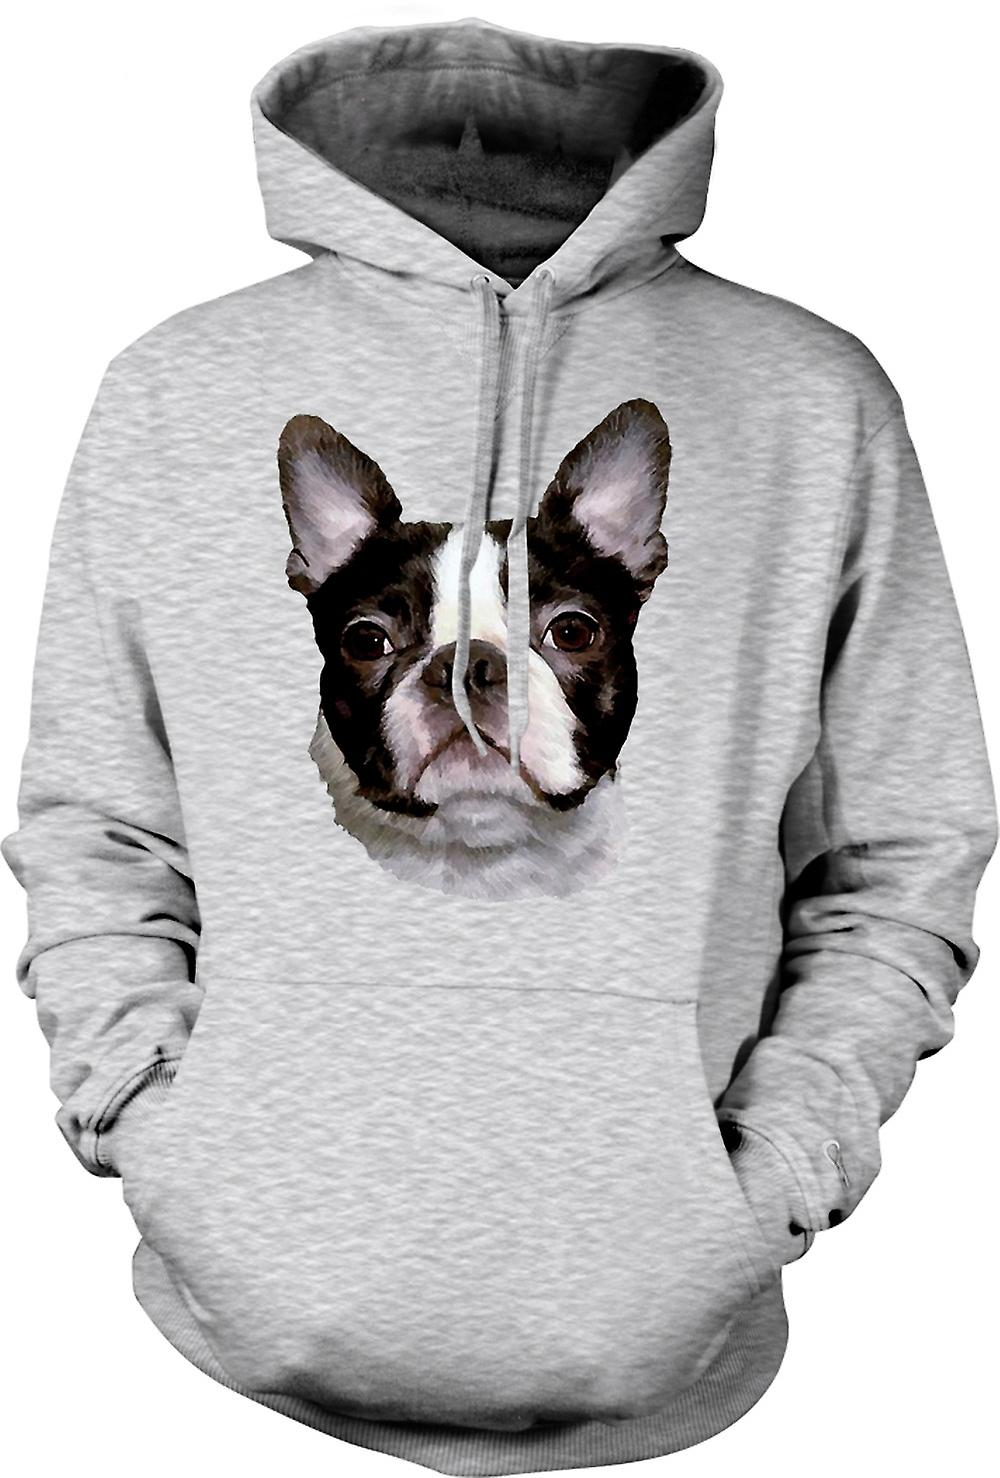 Mens Hoodie - Boston Terrier animali - cane